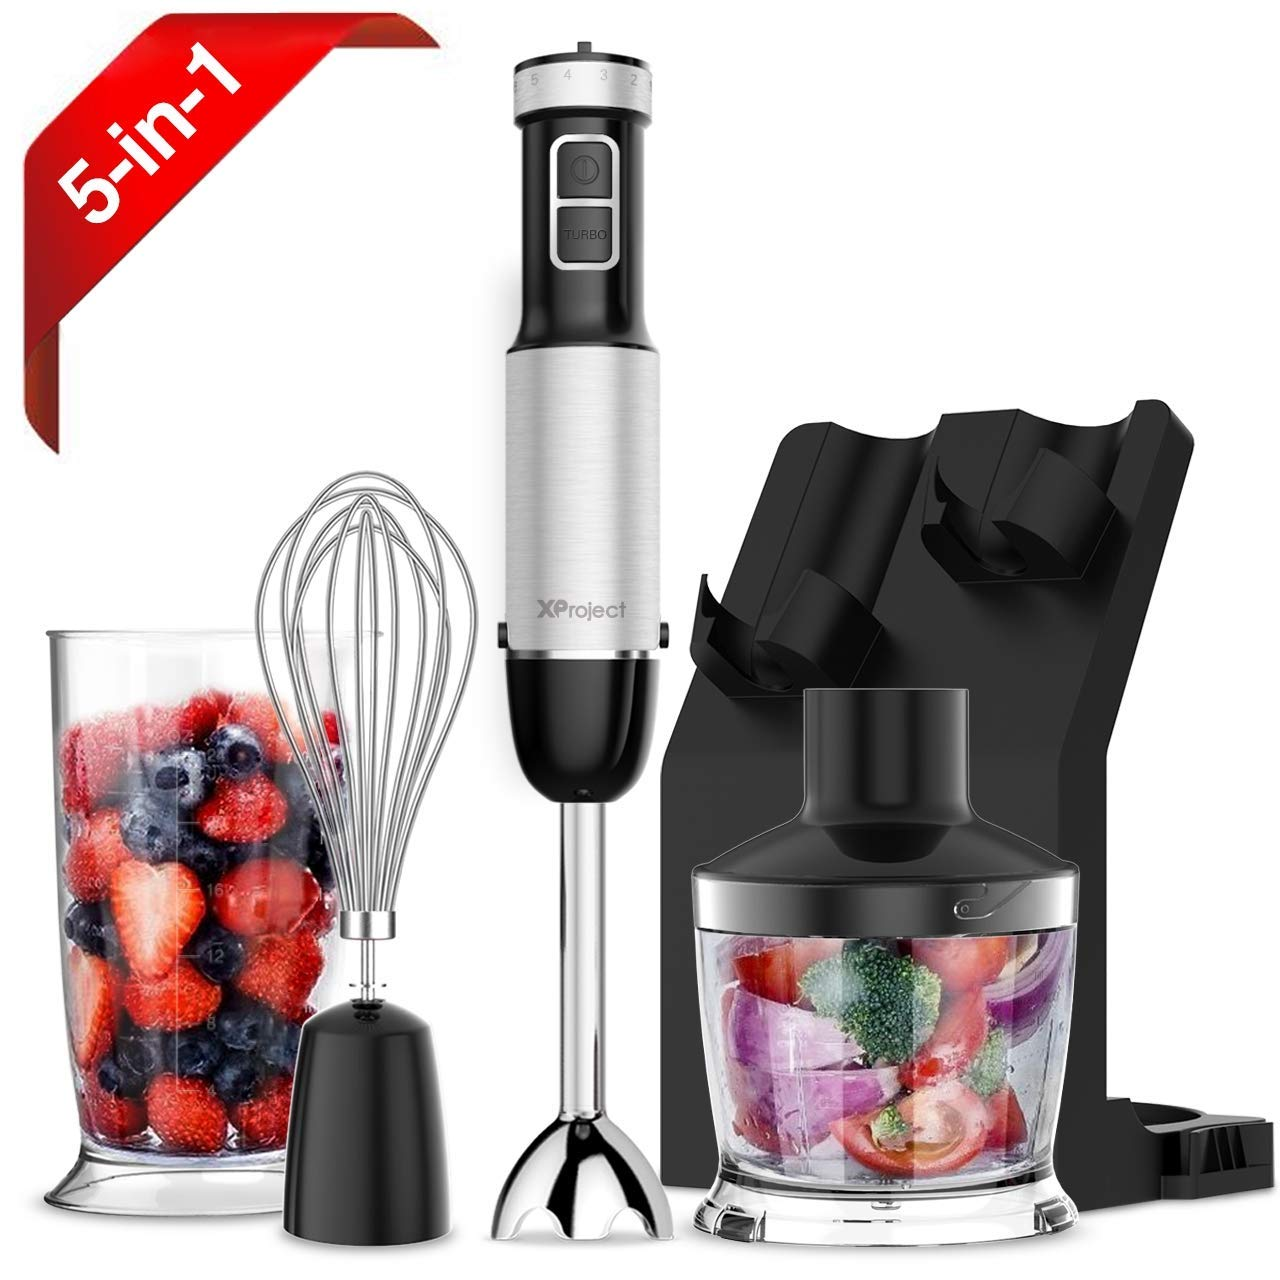 XProject 800W 4-in-1 Hand Blender with 6 Speed,Powerful Immersion Hand